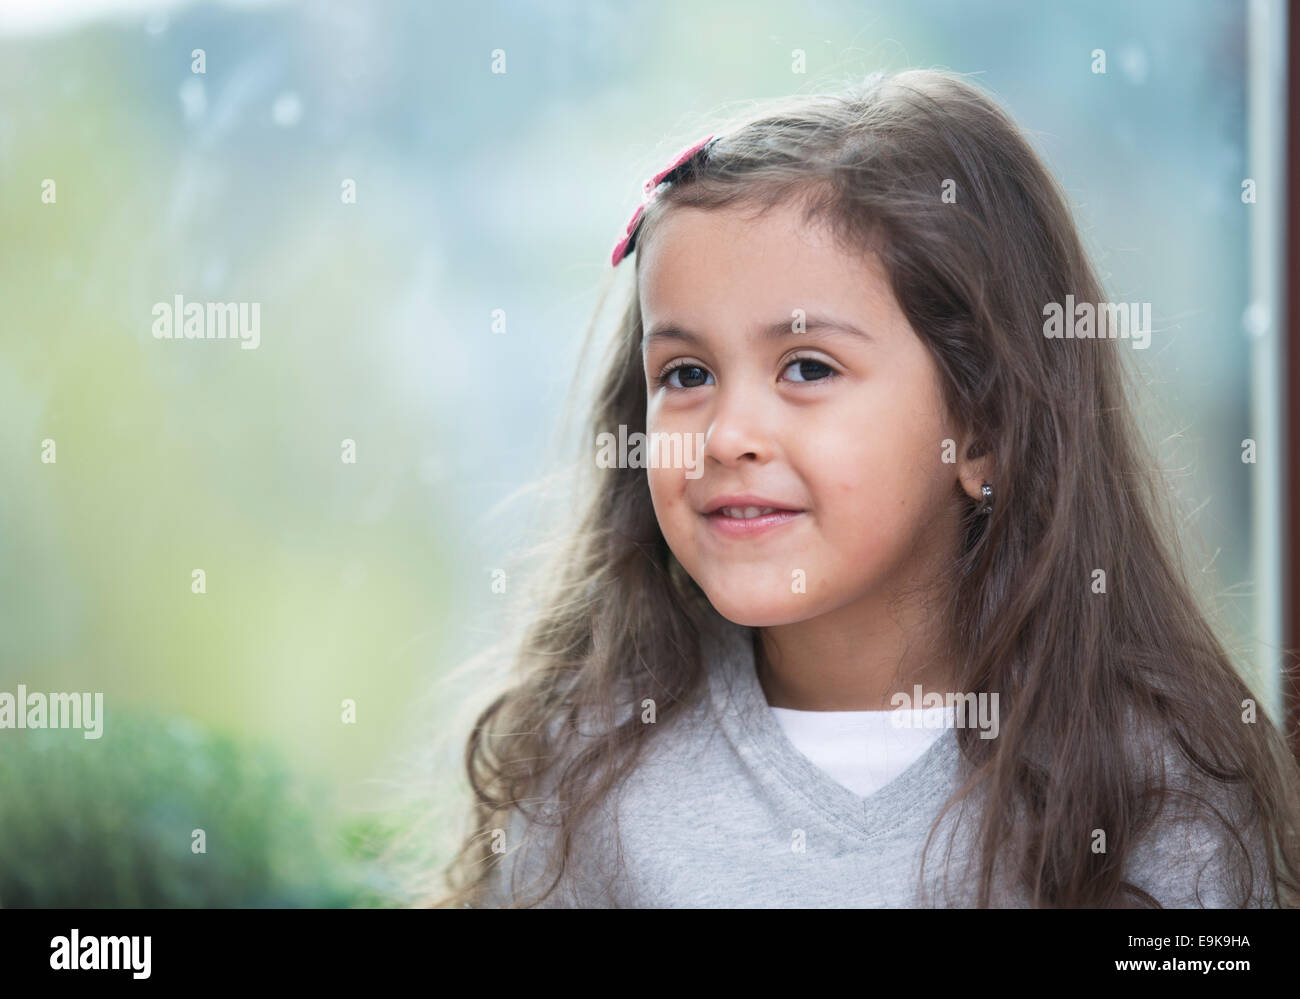 Portrait of cute little girl against glass window at home - Stock Image